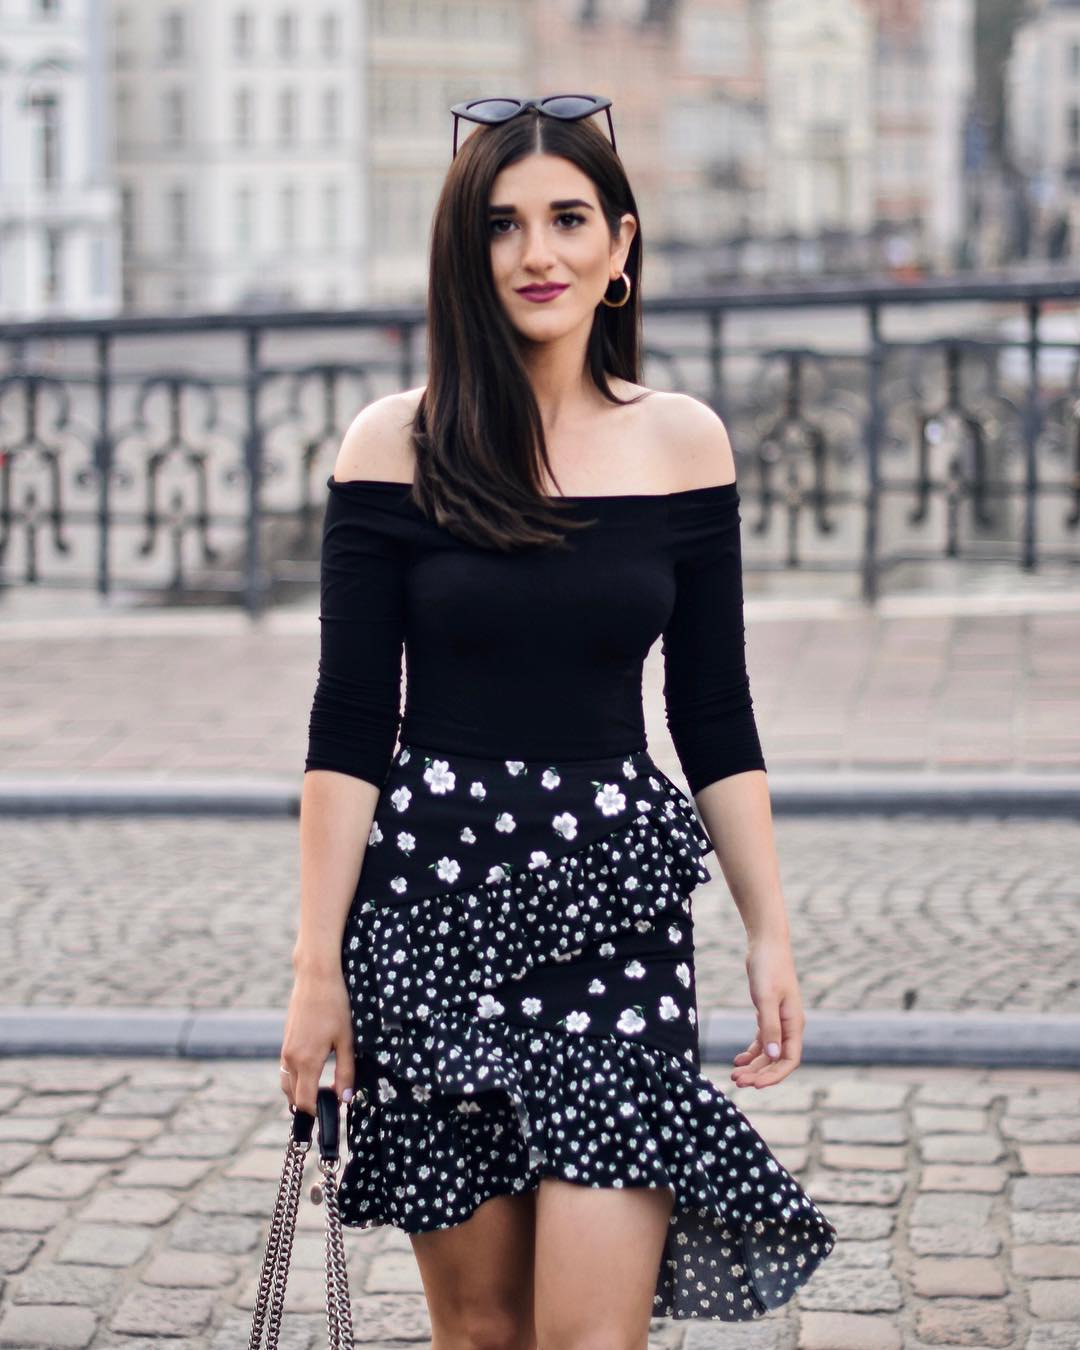 Belgium Travel Guide Bruges Ghent In 4 Days Esther Santer Fashion Blog NYC Street Style Blogger Outfit Sight Seeing Tourist Shop What How To Wear Expore What To Do Vacatiom Itinerary Short Stopover EuroTrip Layover Europe Summer Activities Suggestions.jpg